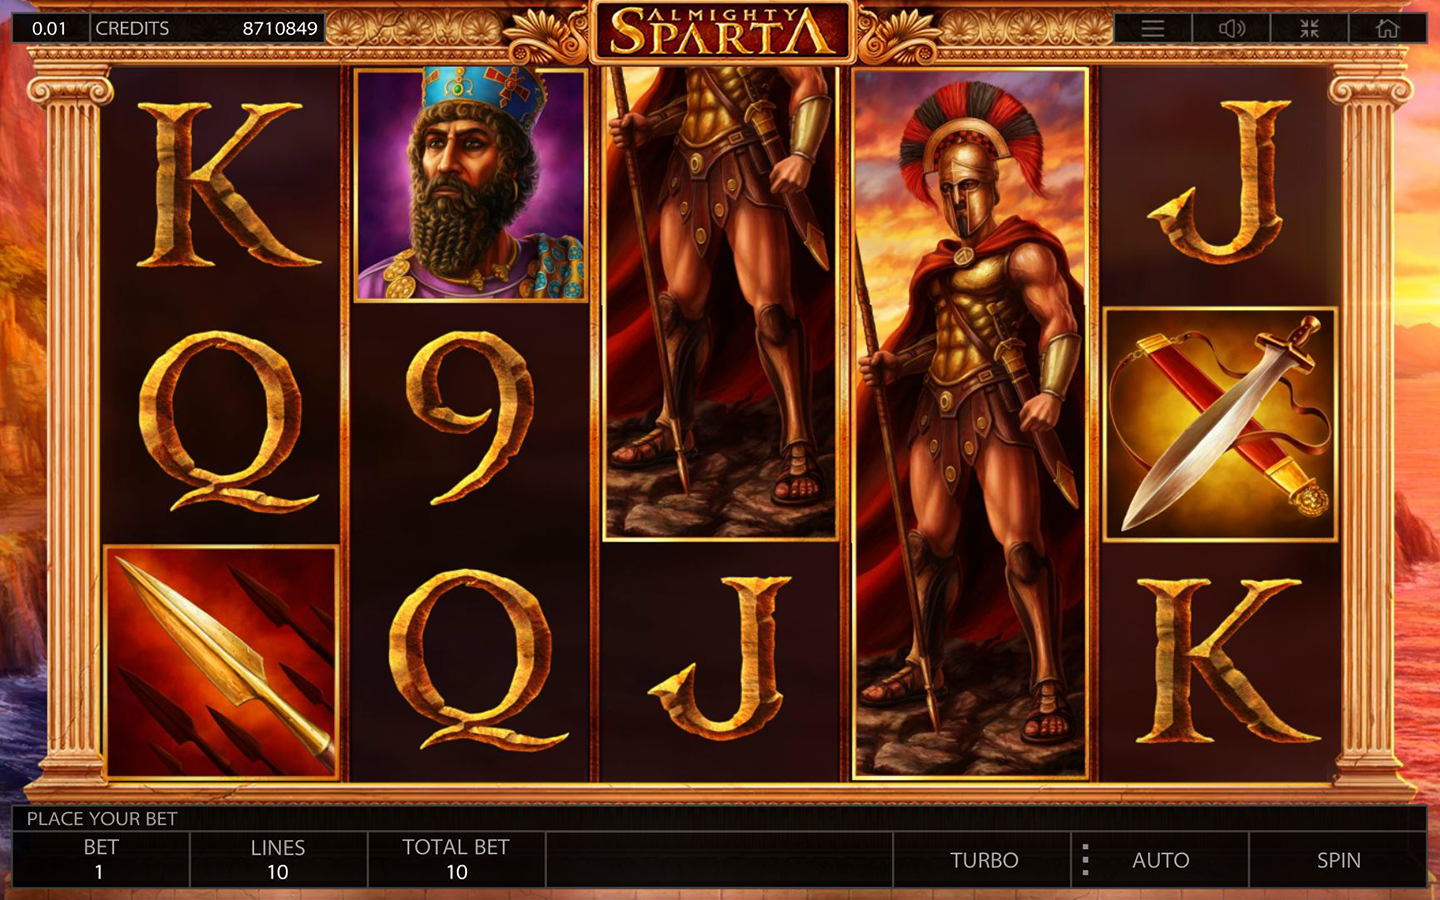 Play Almighty Sparta slot by Endorphina!